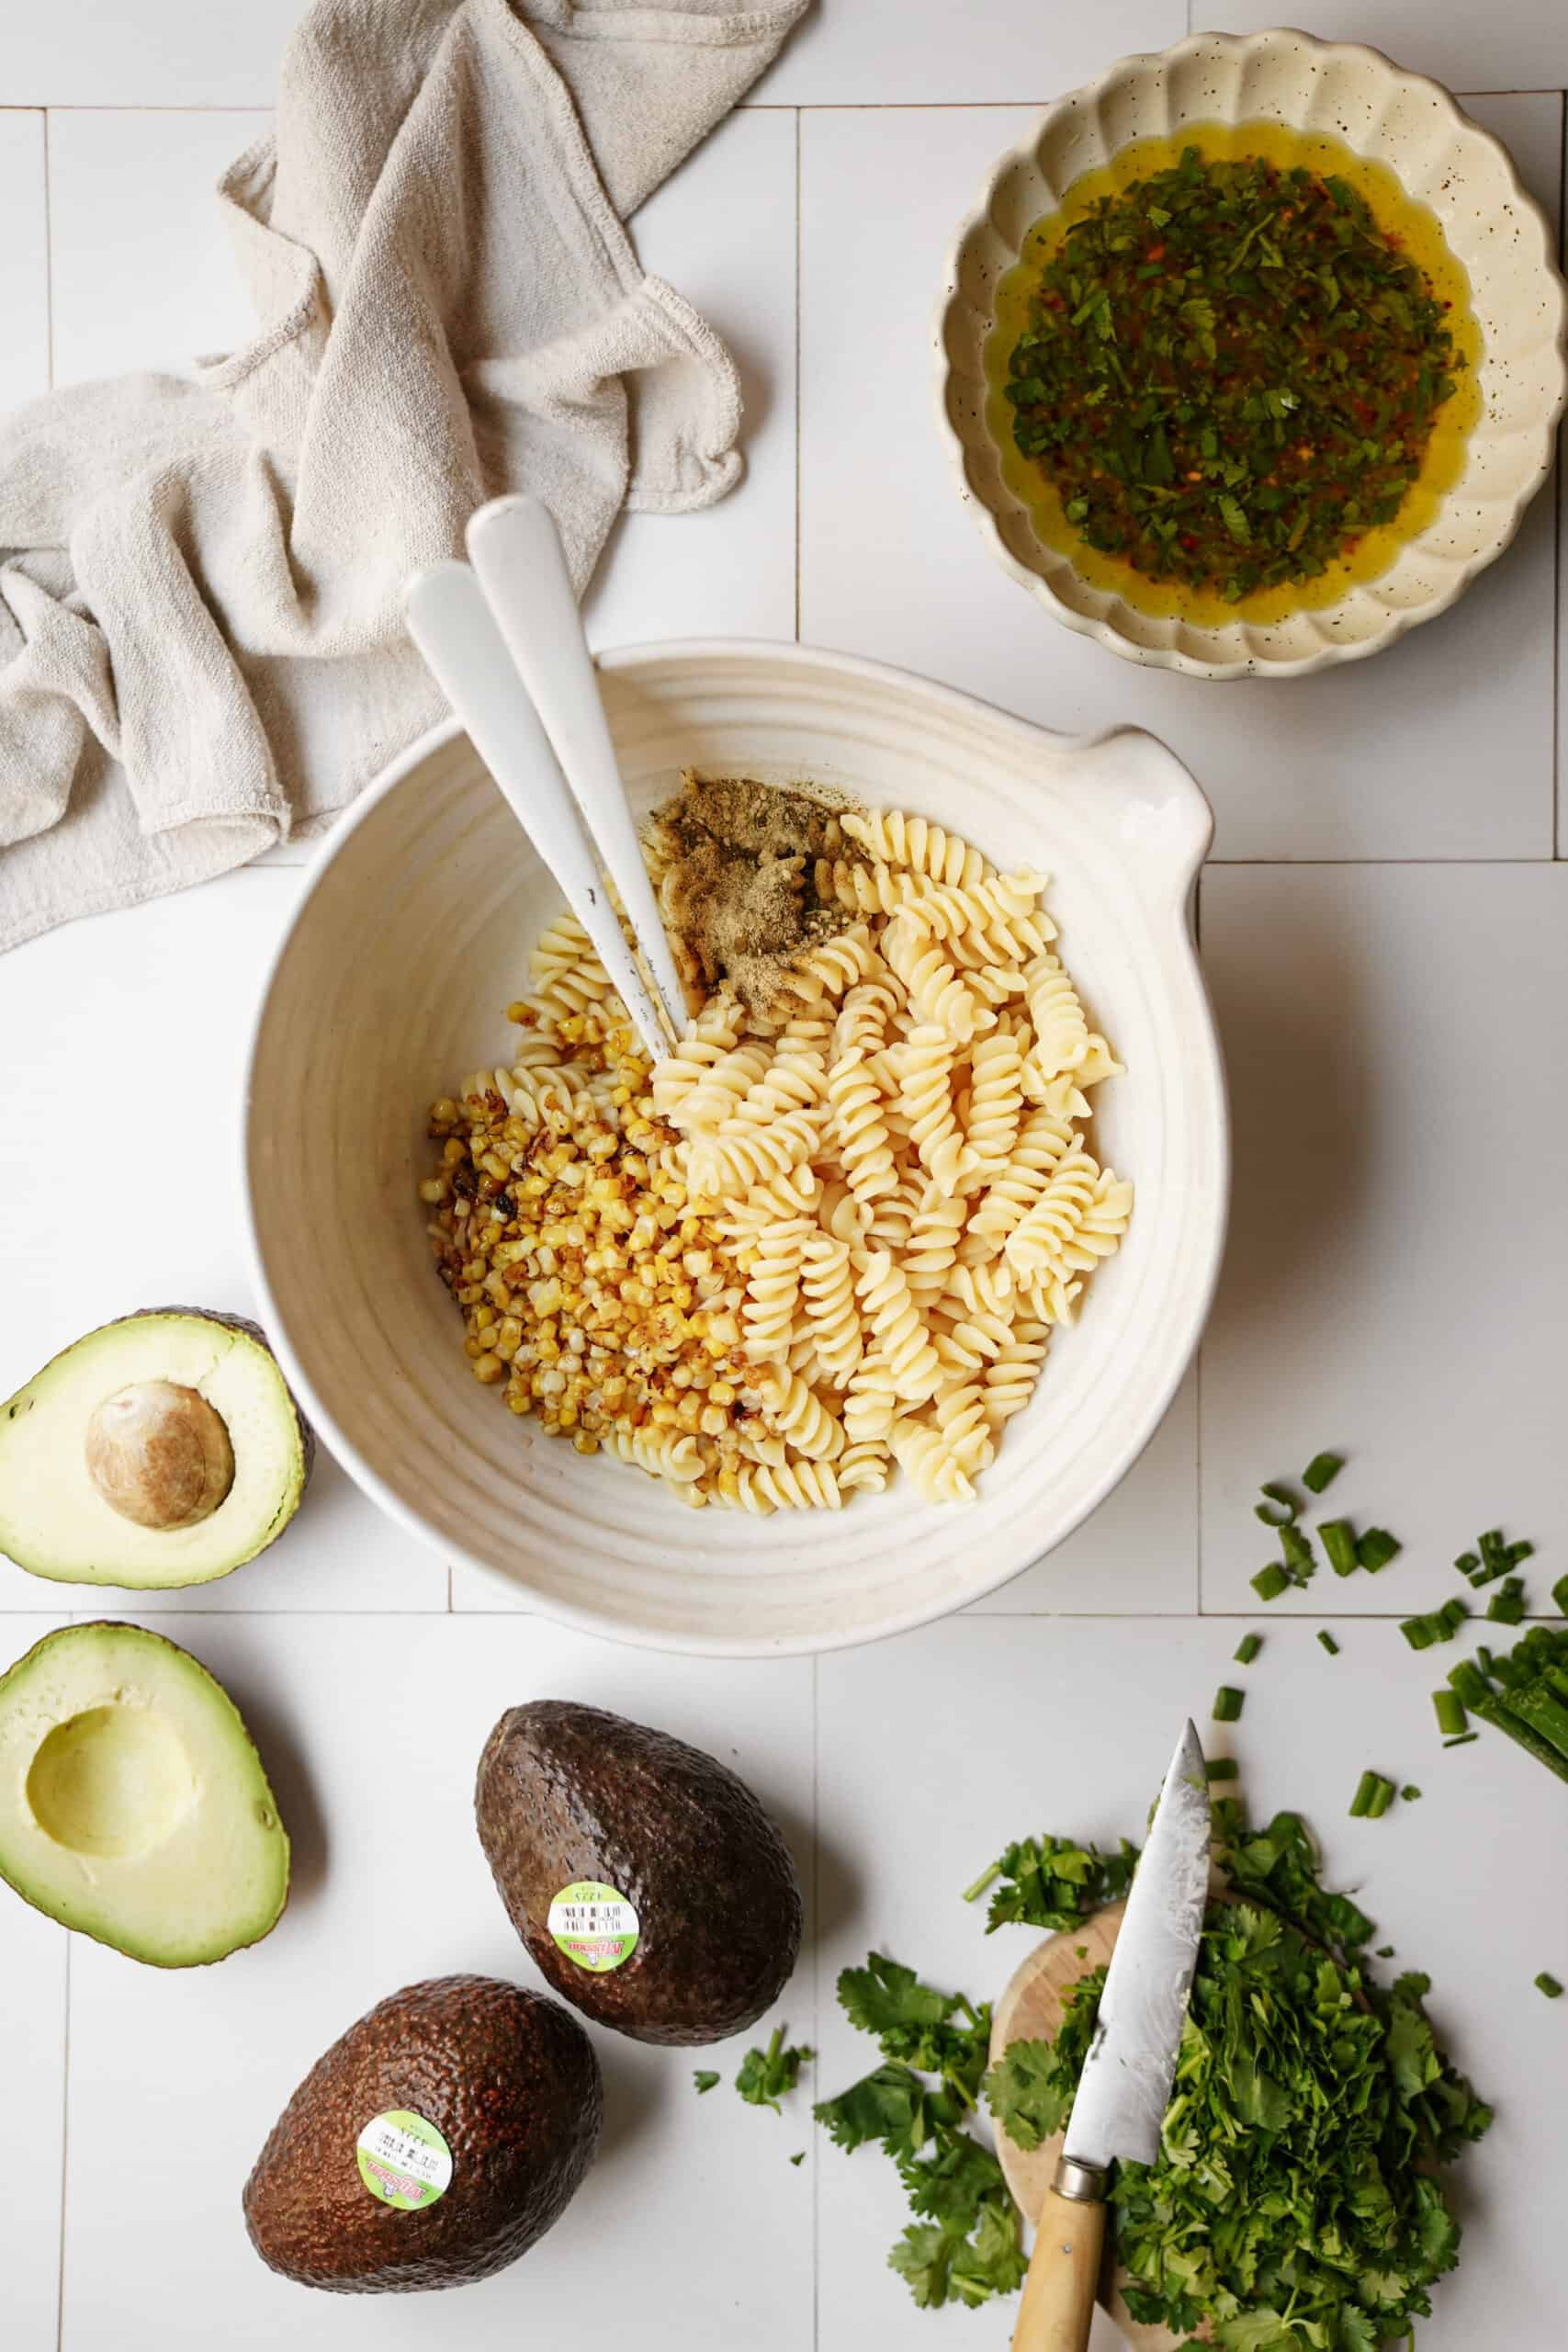 Ingredients for avocado pasta salad on a countertop